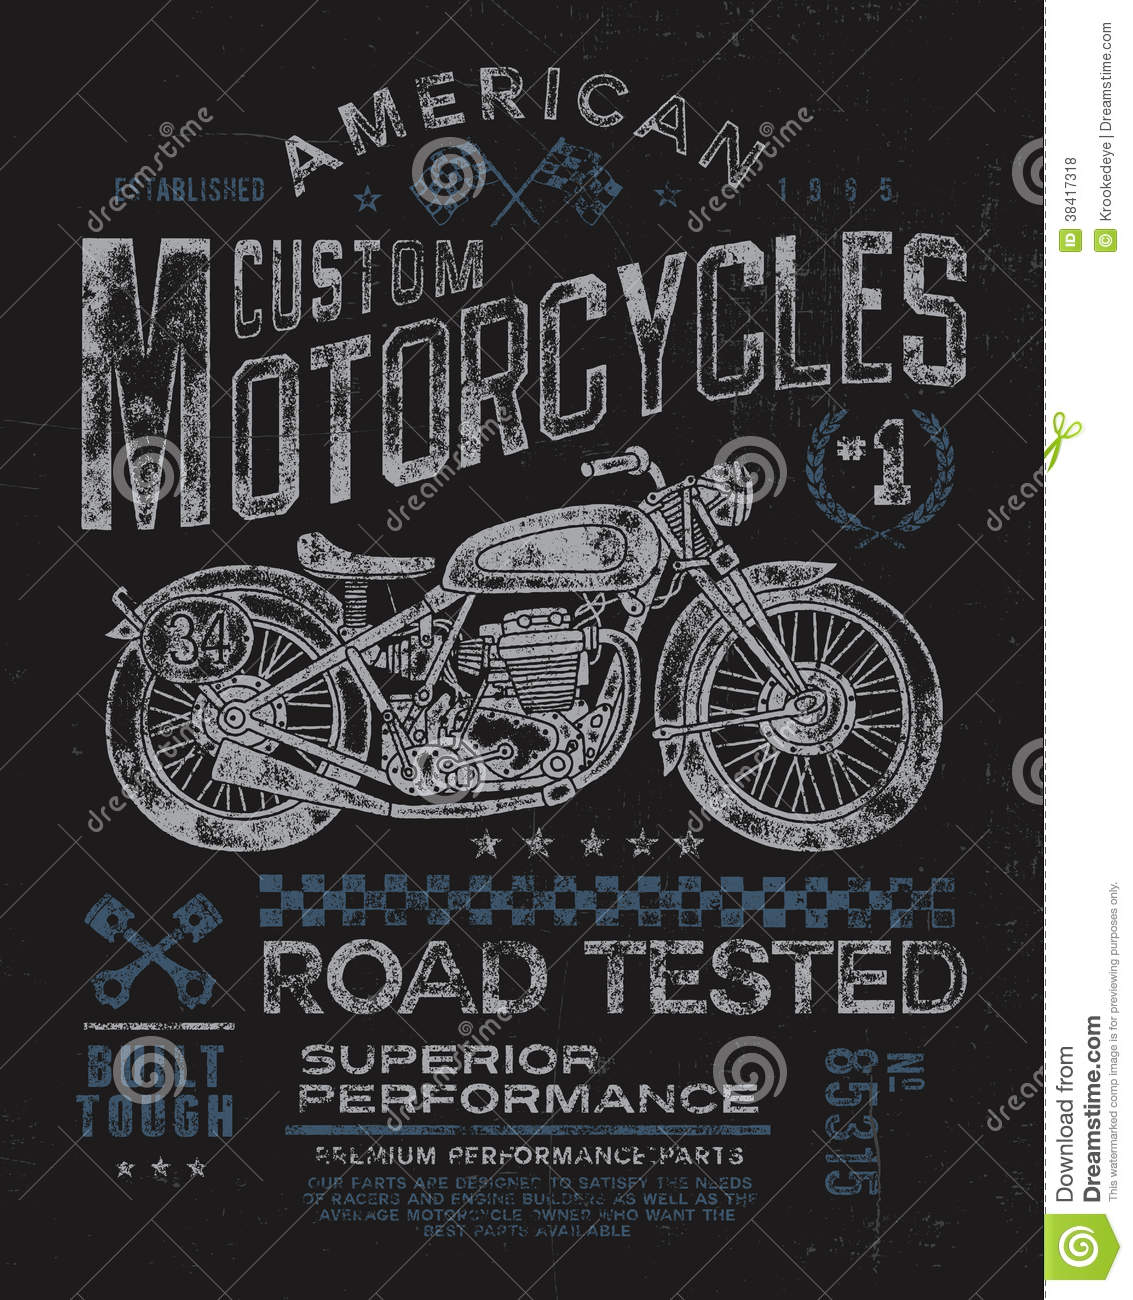 Design t shirts graphic - Vintage Motorcycle T Shirt Graphic Royalty Free Stock Photos